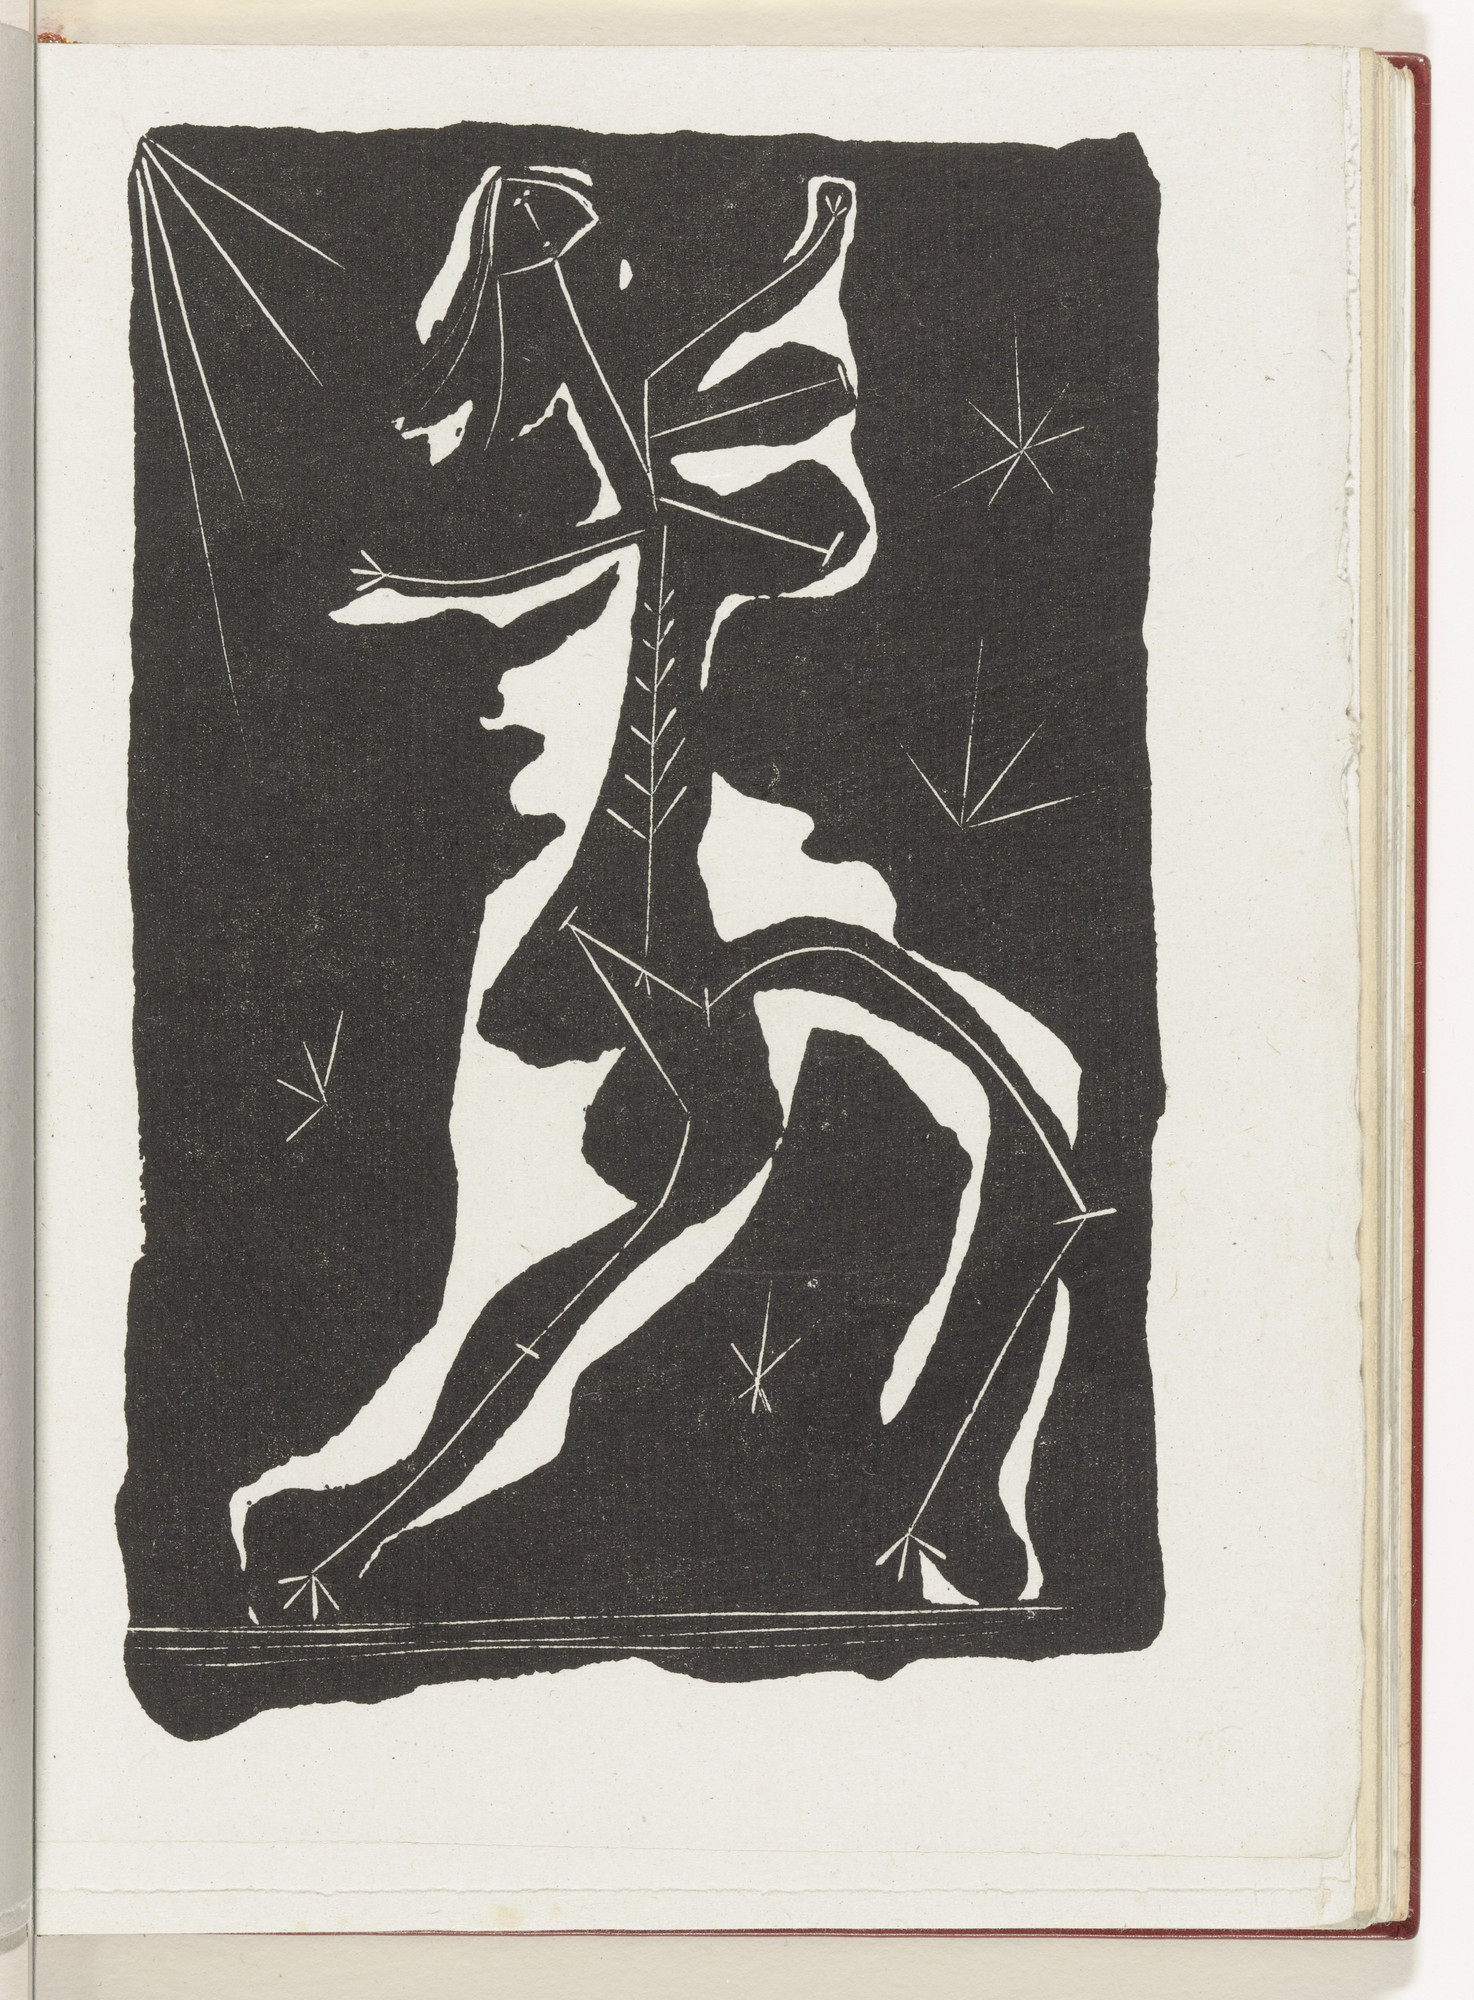 Pablo Picasso. Dancer (plate, page 35) from the illustrated book Non Vouloir. 1942